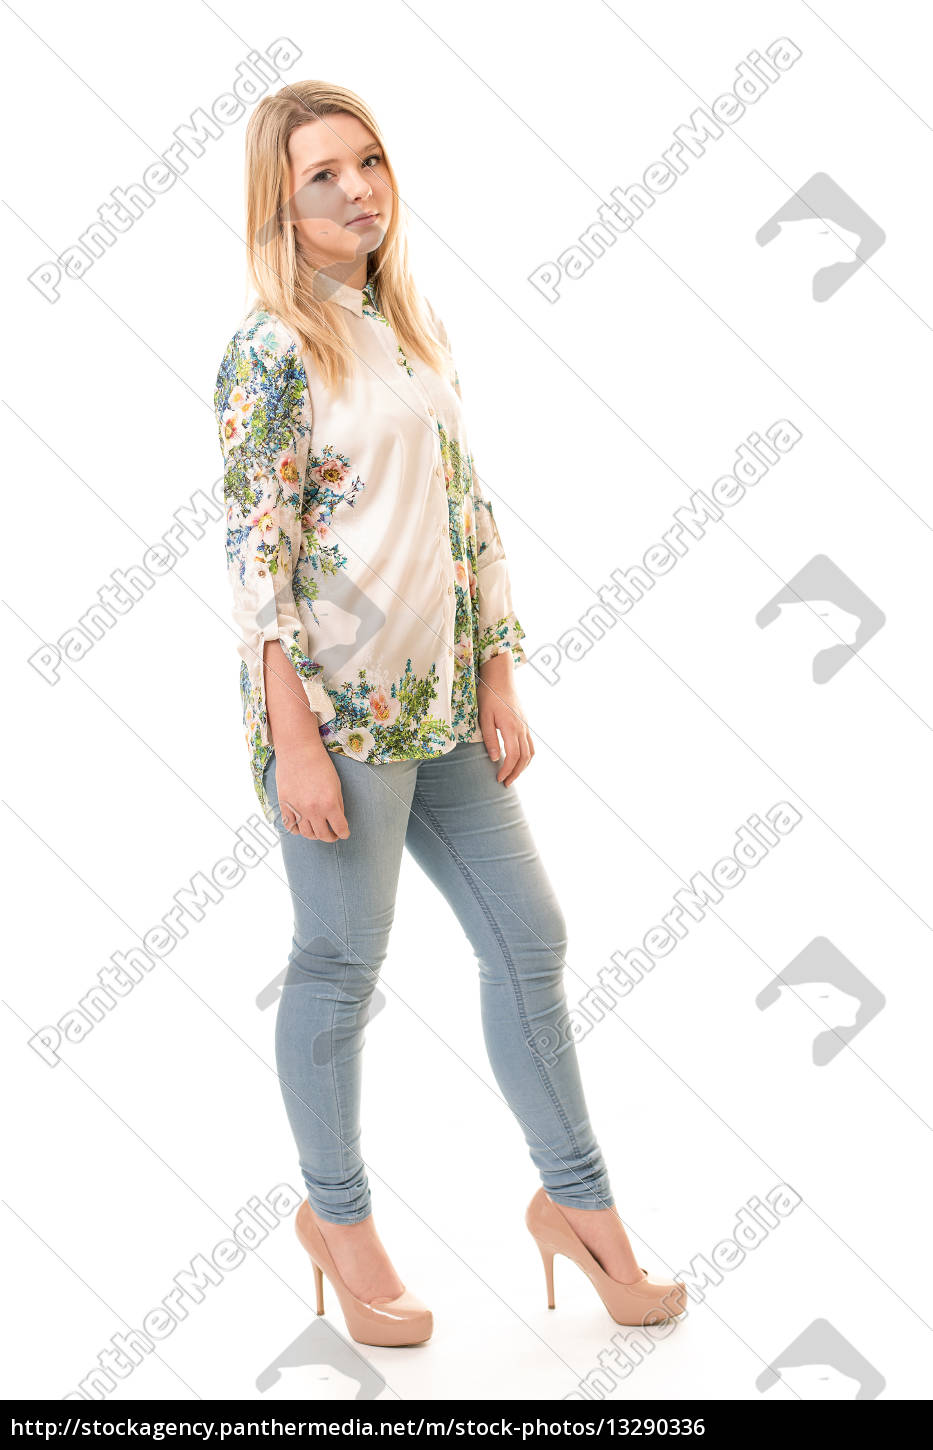 Royalty Free Photo 13290336 Beatiful Blond Teenager In Shirt And Trousers